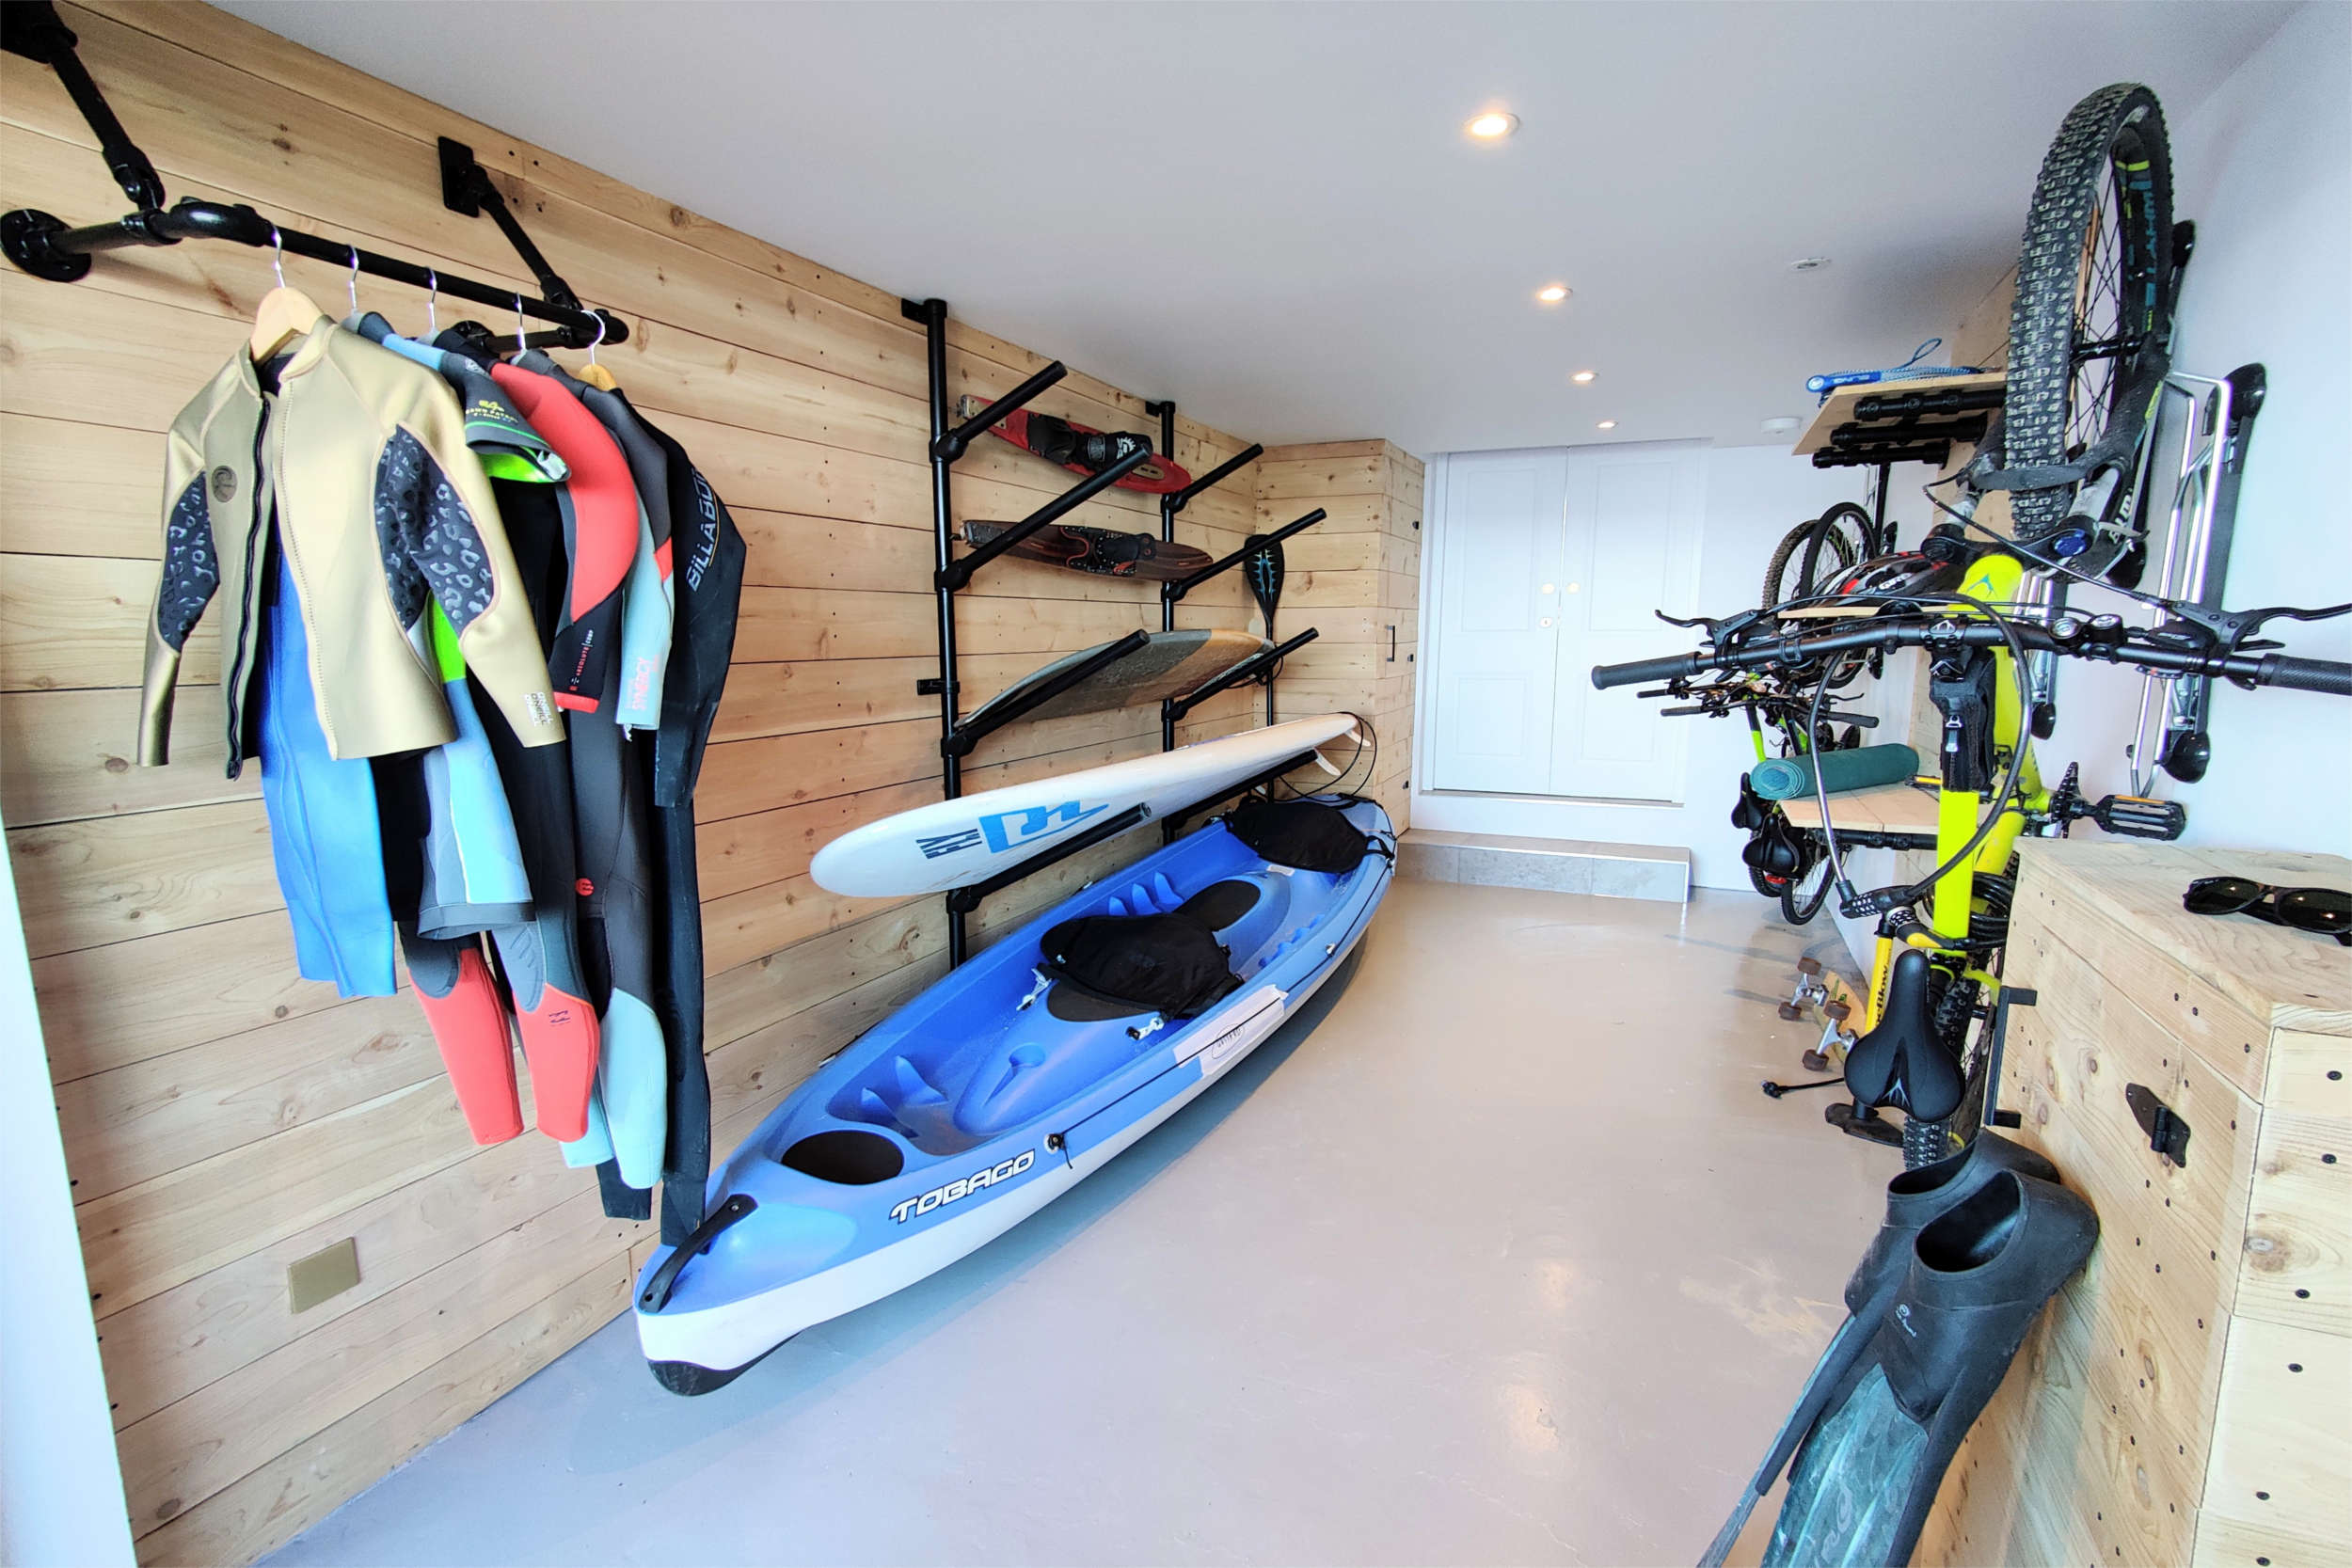 Cedar clad Board, Bike & Kit Store